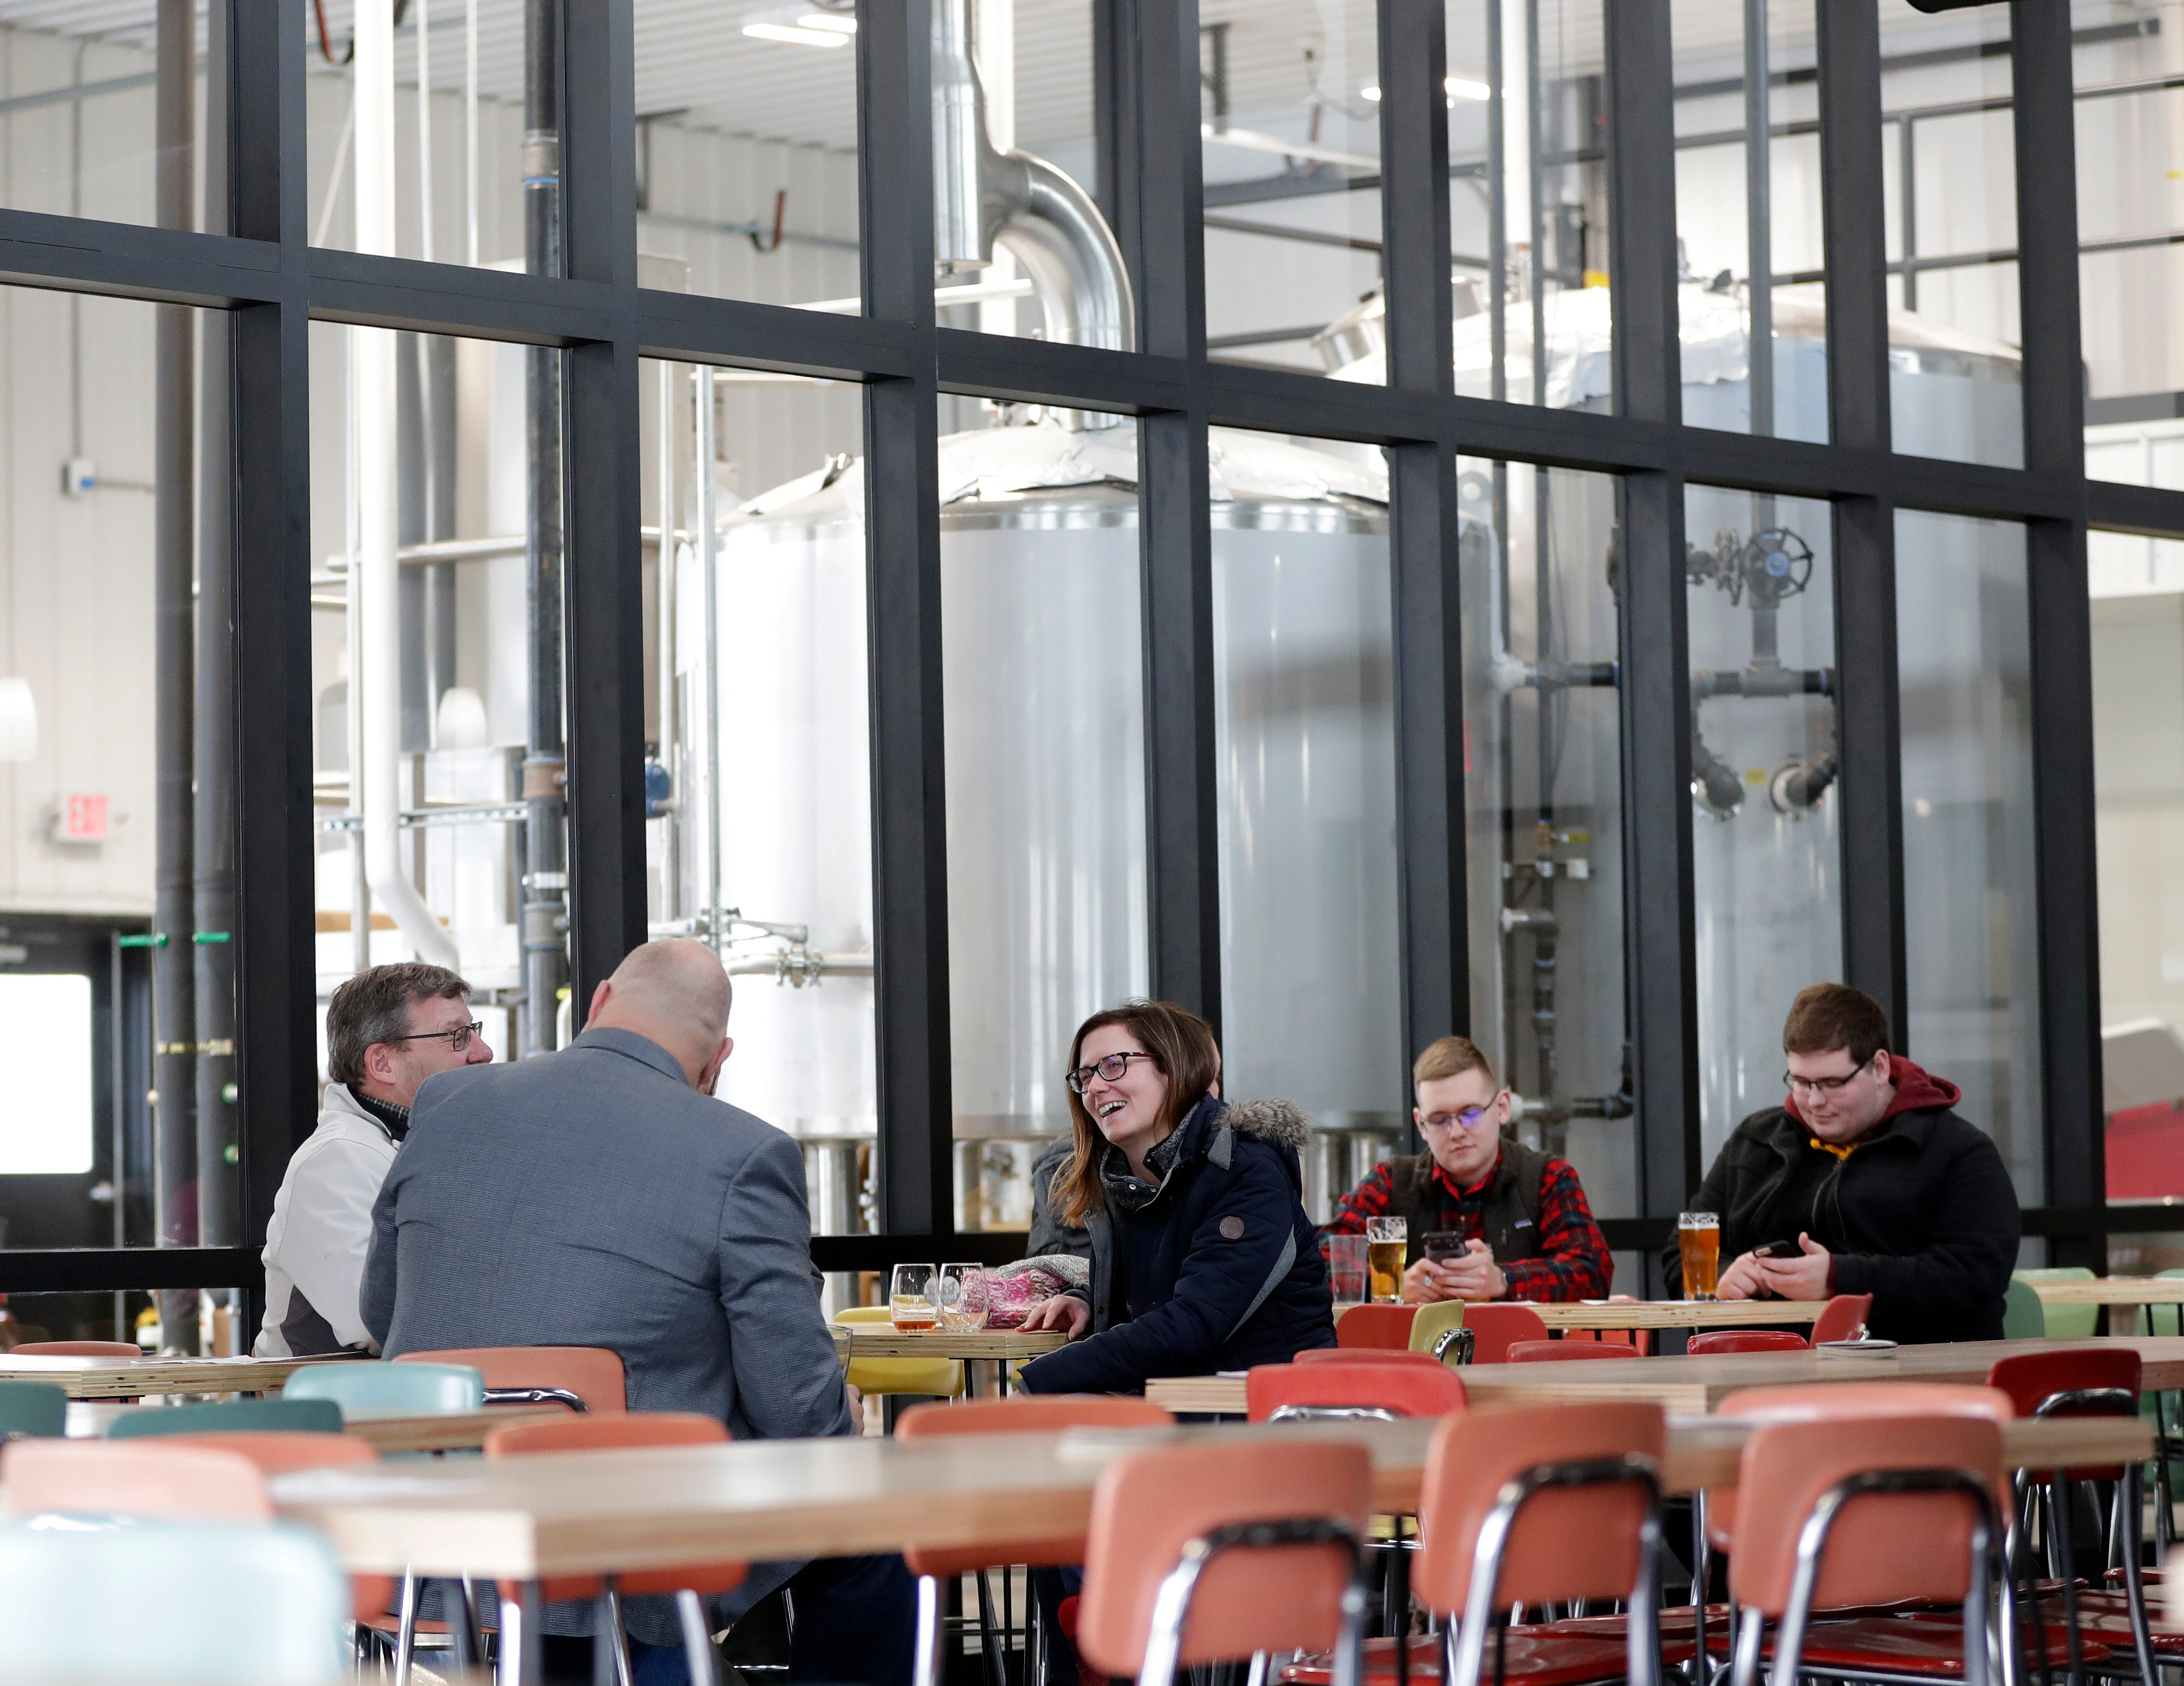 """""""We were so excited to share the beer with people,"""" said Abby about opening the taproom. """"The fact that people are coming in and enjoying it, is exactly what we wanted to do."""""""